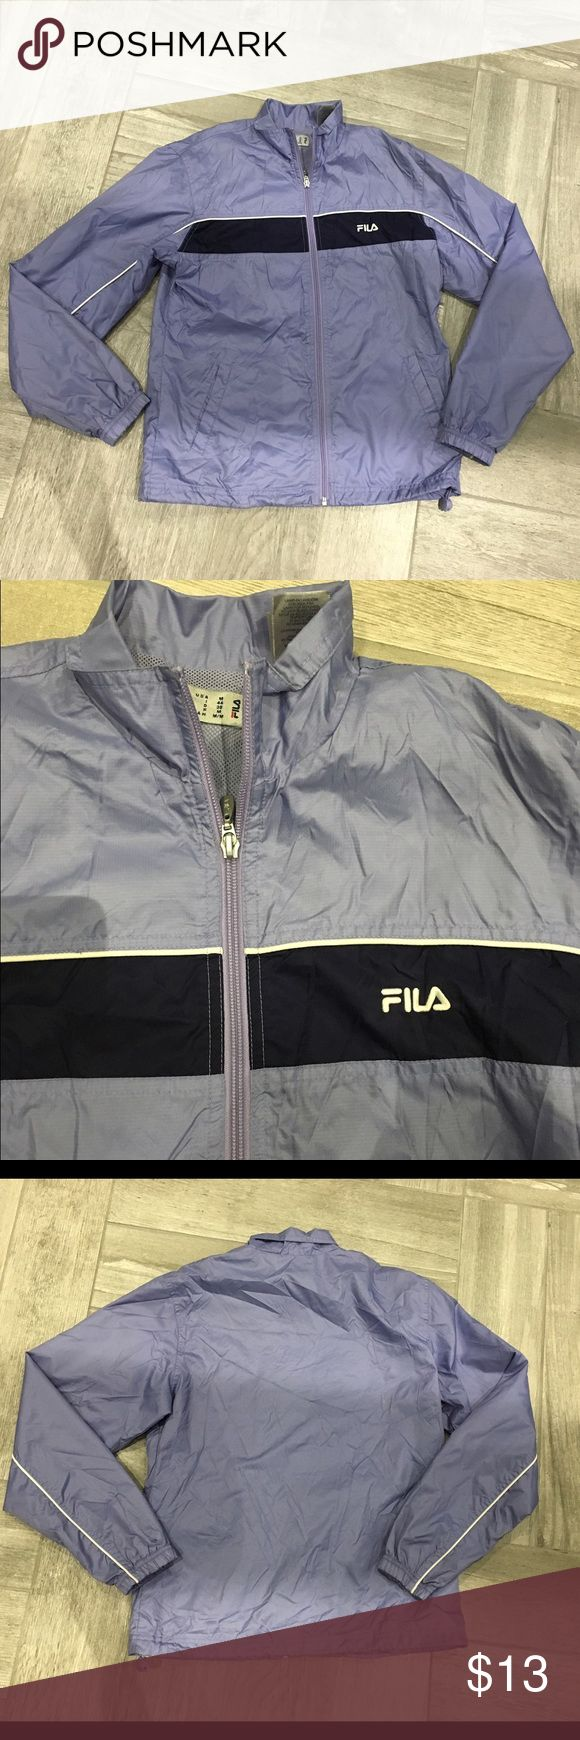 FILA Jacket Cute vintage looking jacket! In almost perfect condition and great for activity wear or casual wear! 💯% nylon Fila Jackets & Coats